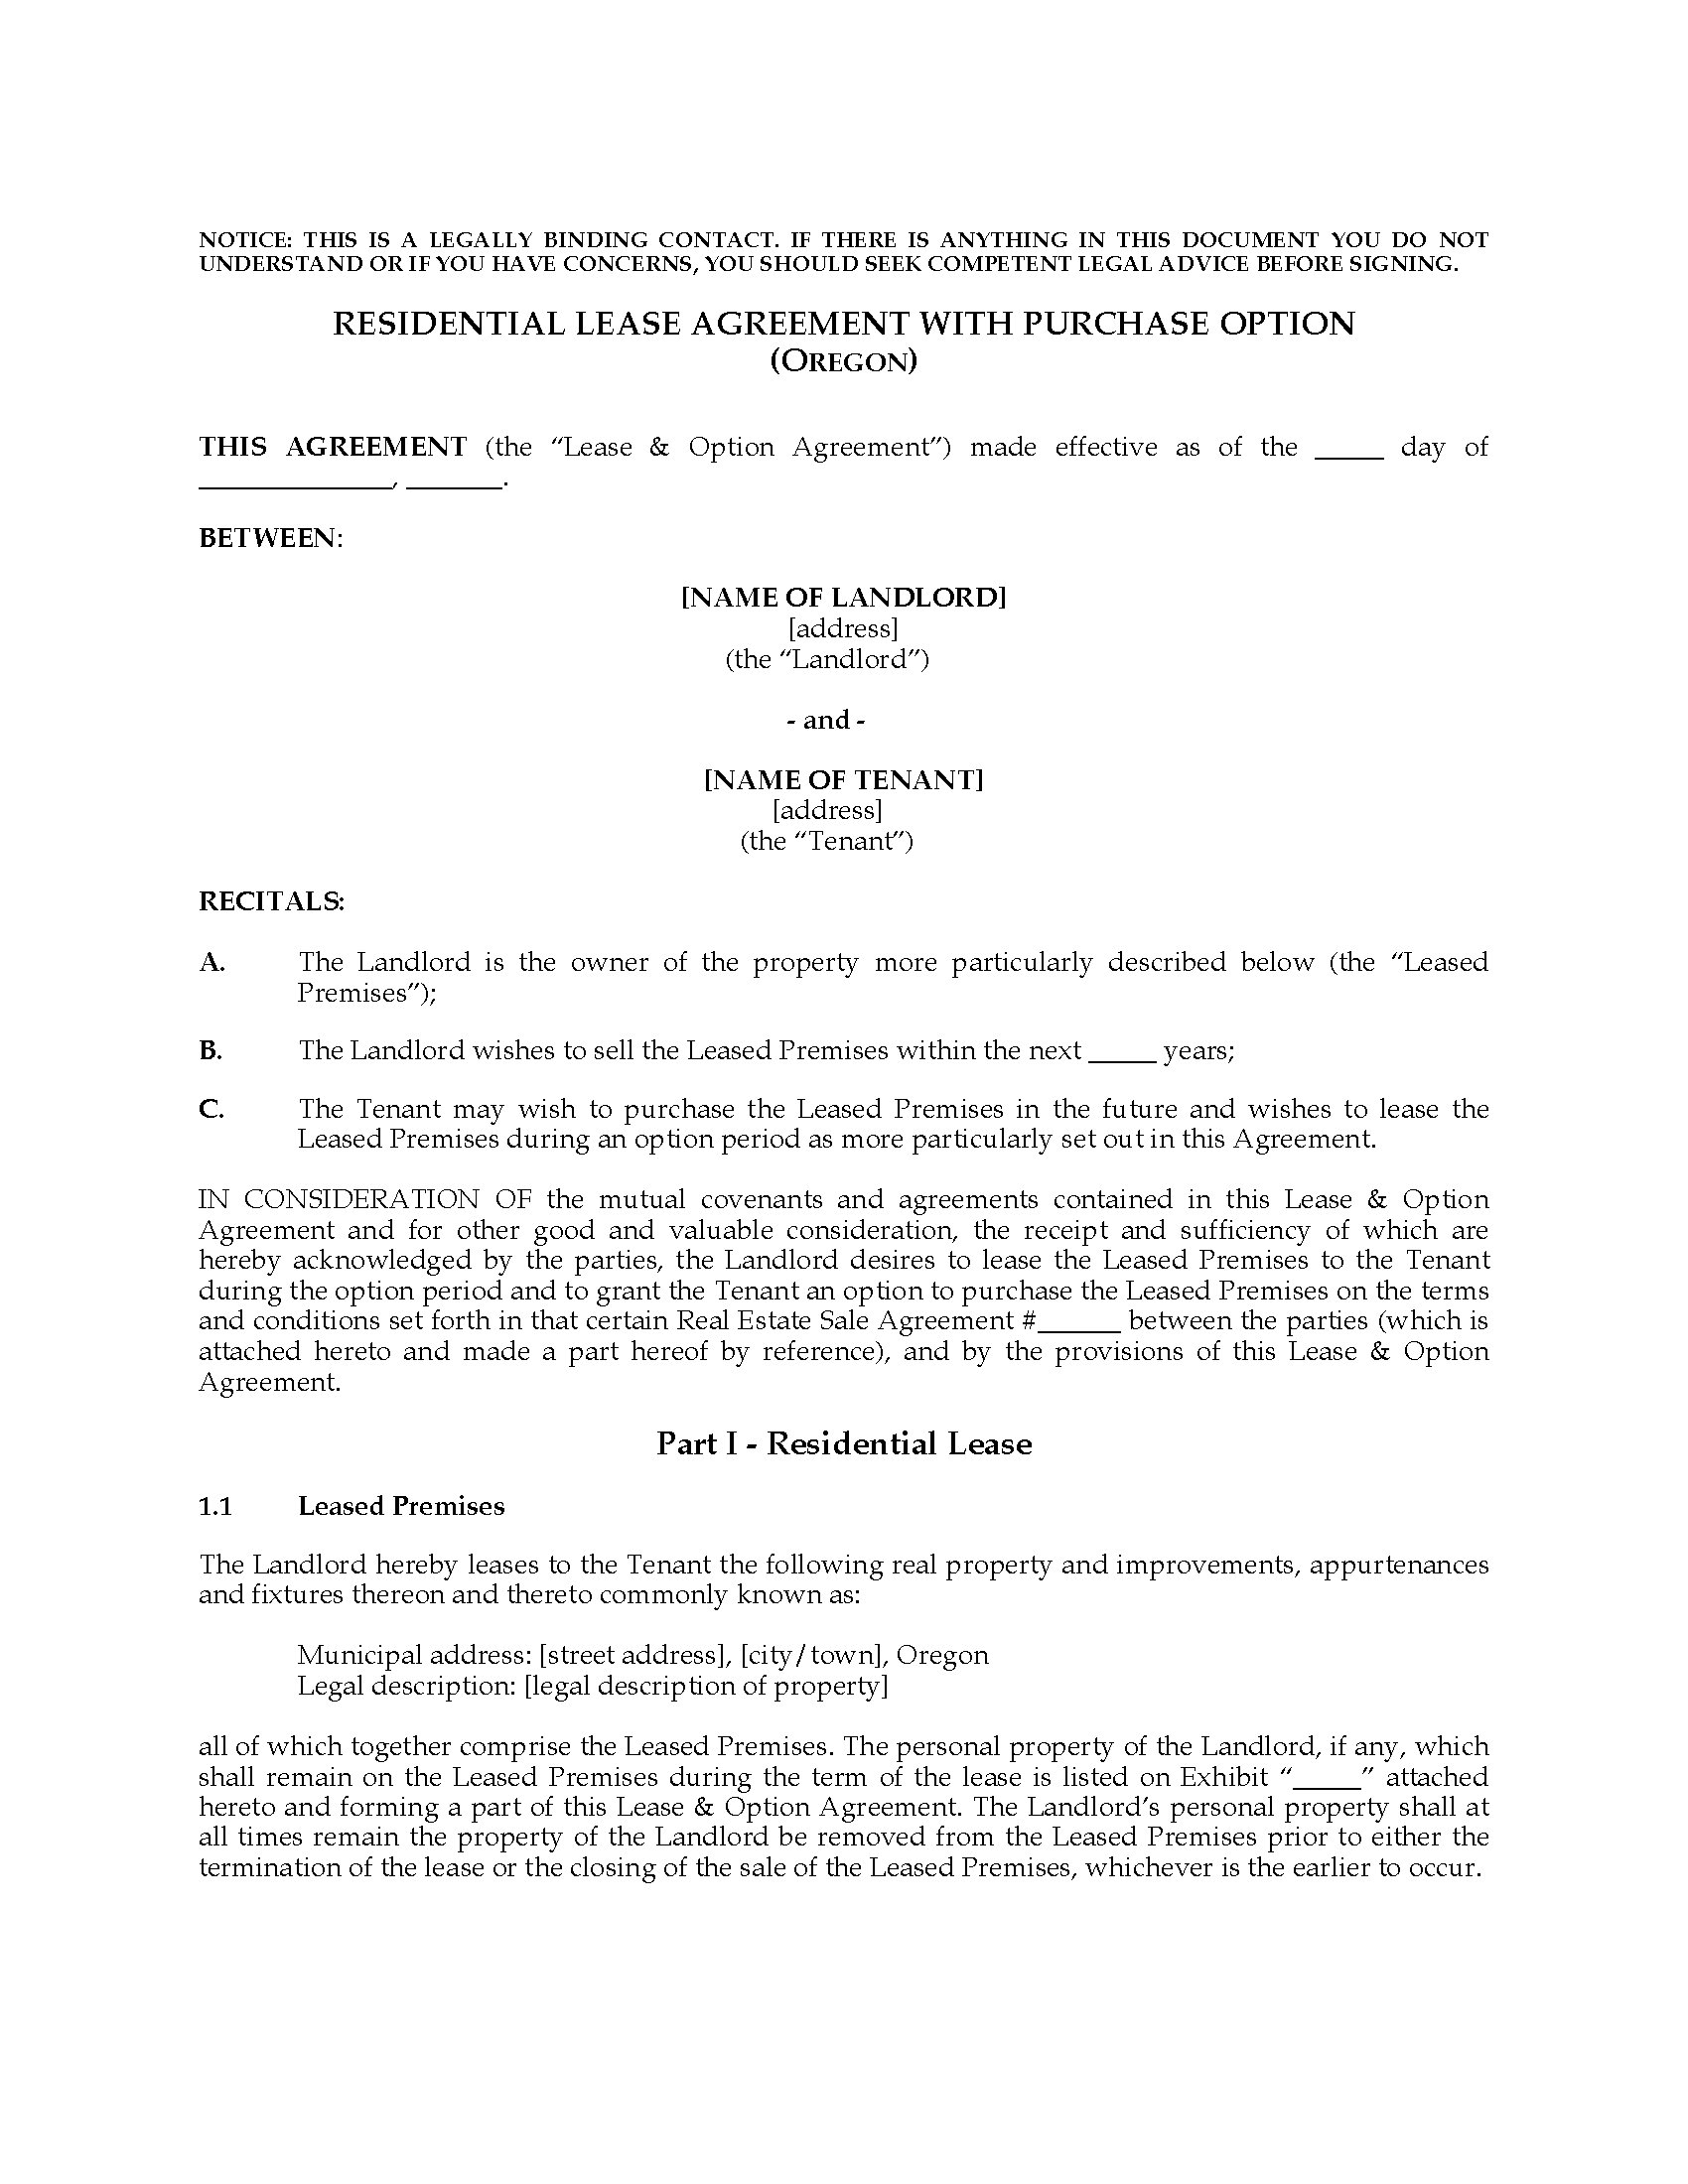 Oregon Residential Lease Agreement With Option To Purchase